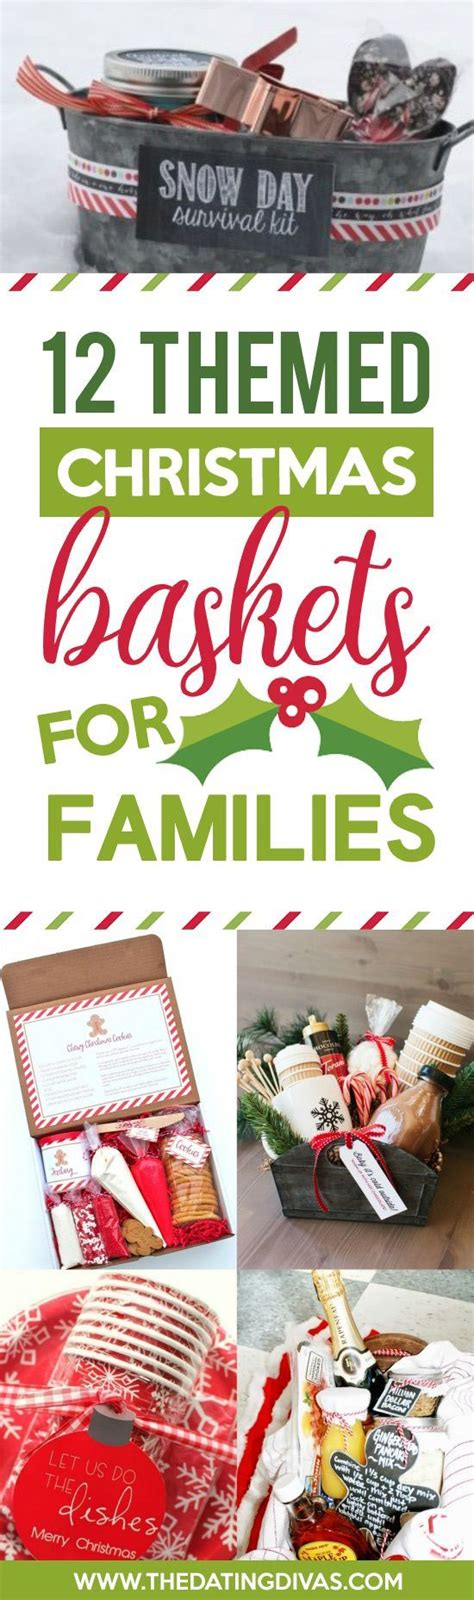 25 unique family gifts ideas on pinterest themed gift